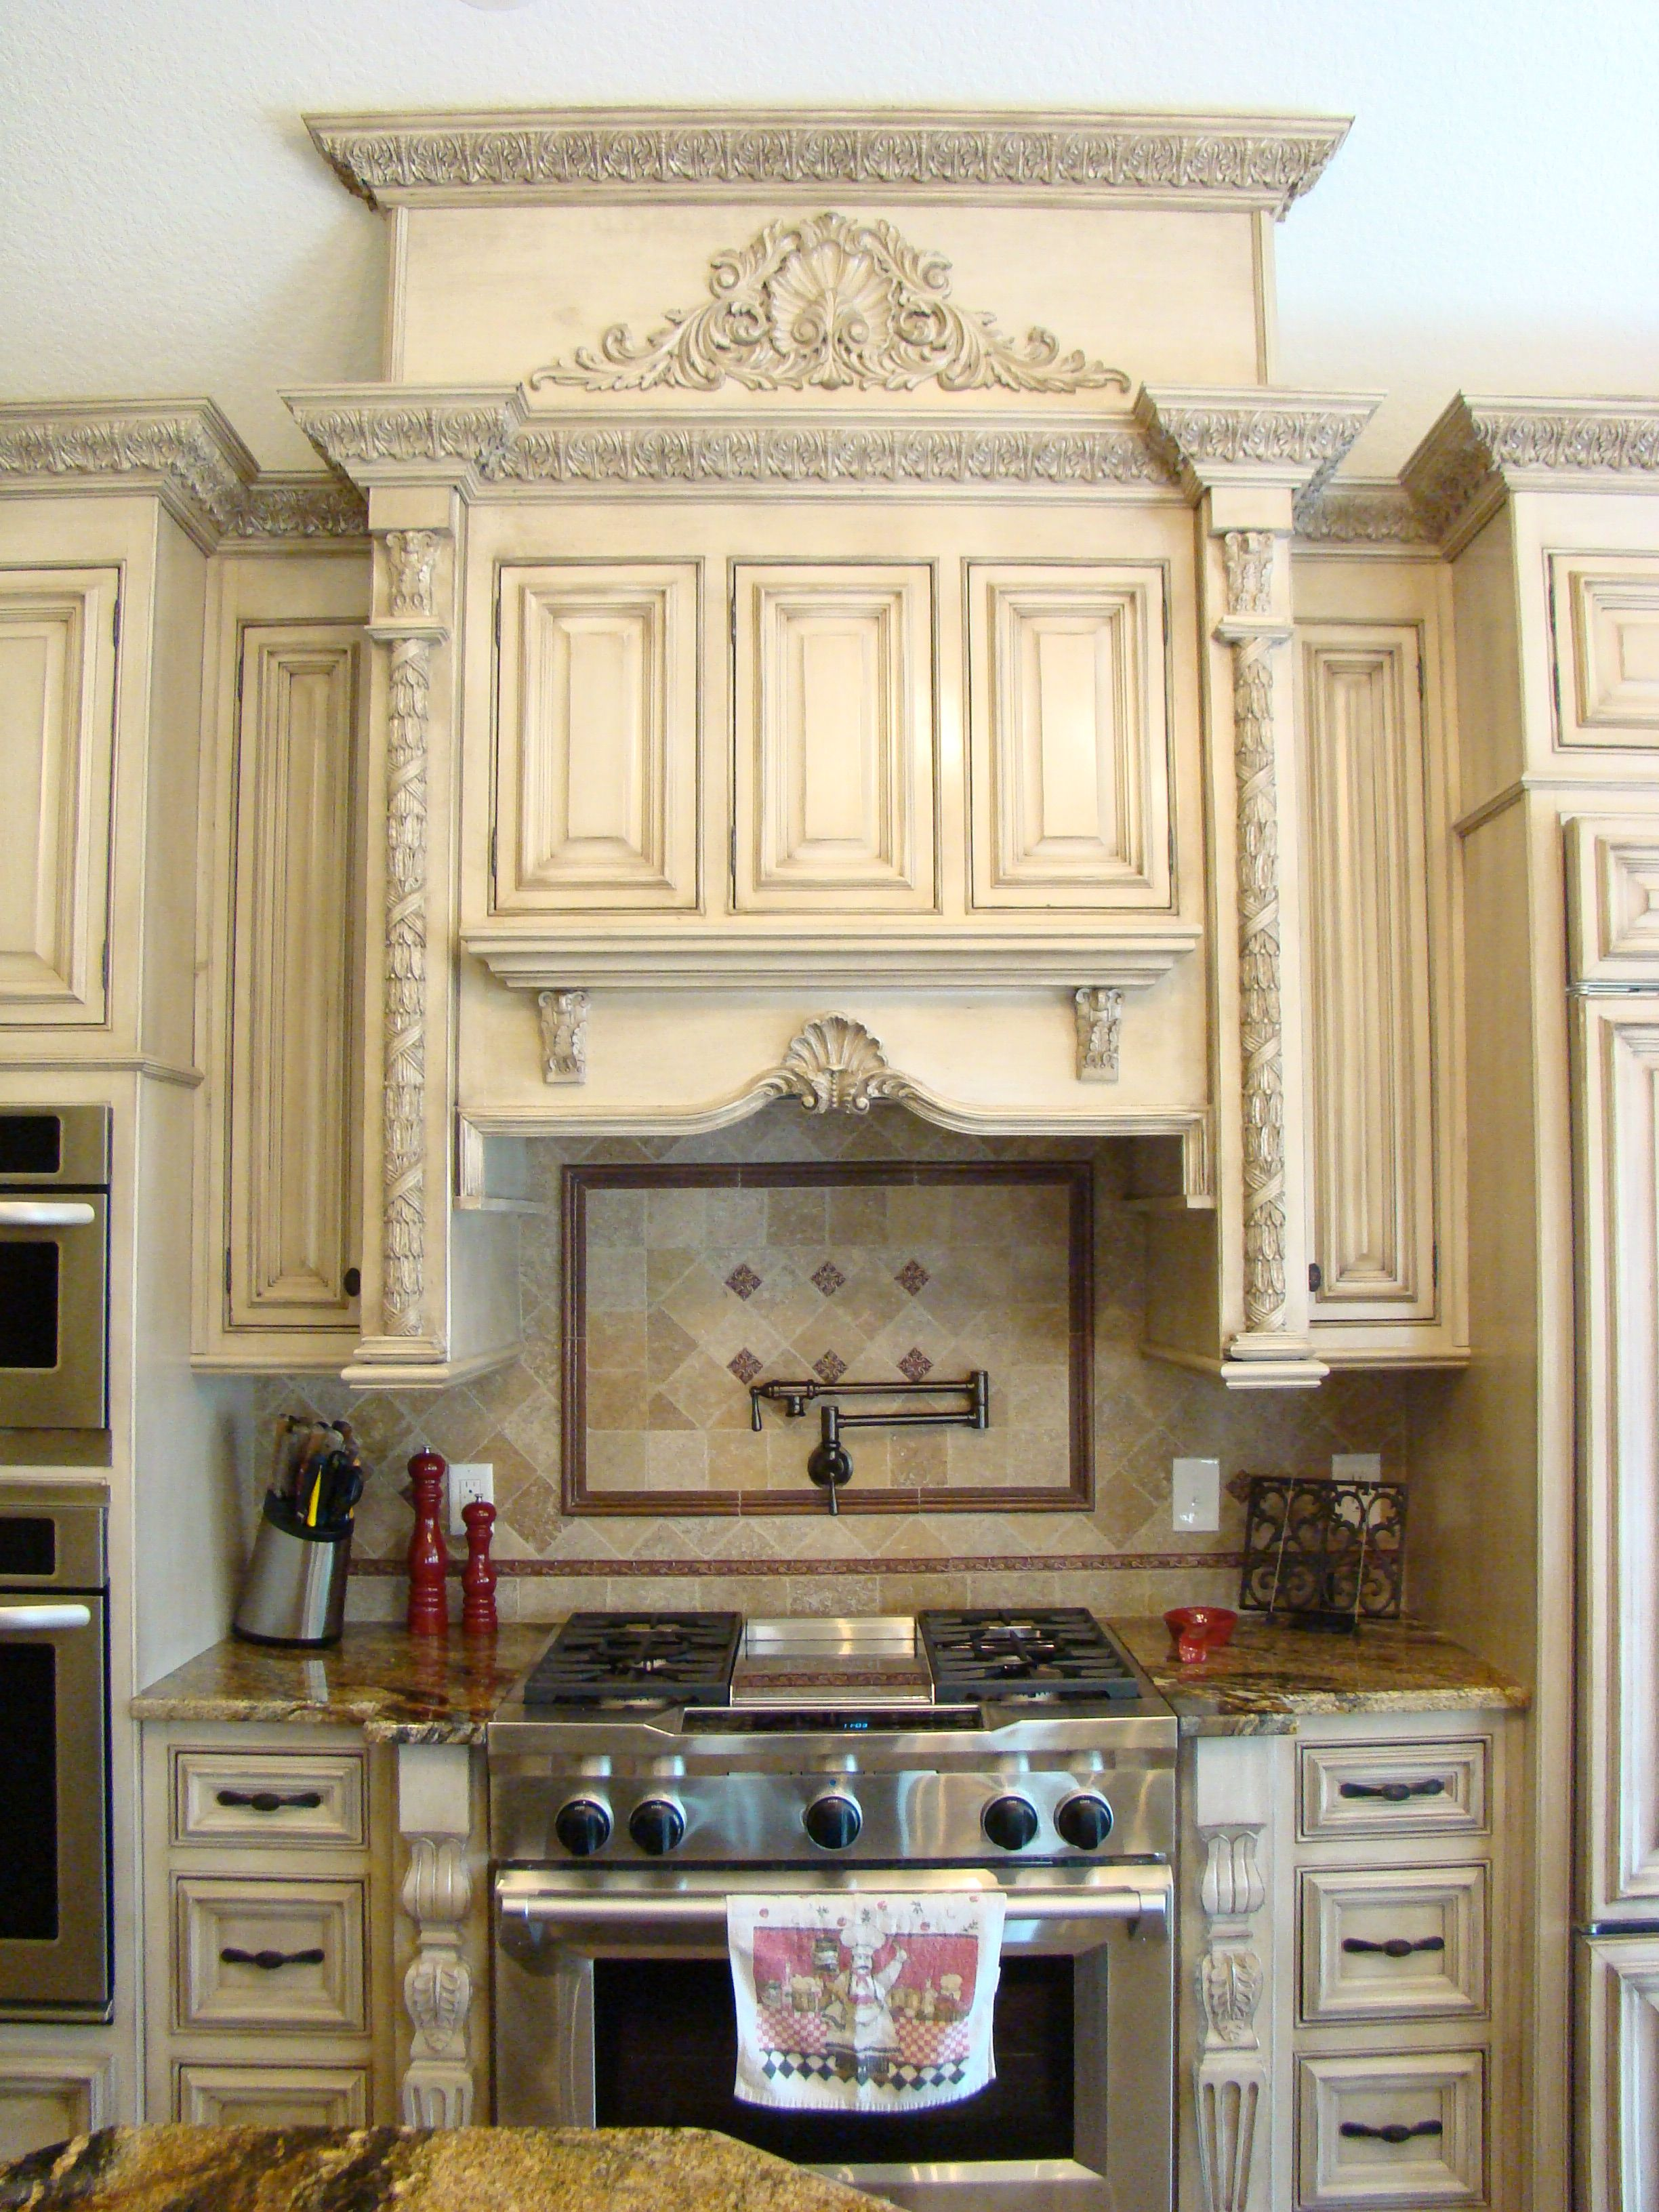 Kitchen Antique Finish Custom Doors And Drawers Intricate Molding Large Antique Finish Vent Custom Kitchen Cabinets Kitchen Design Classic Kitchen Cabinets